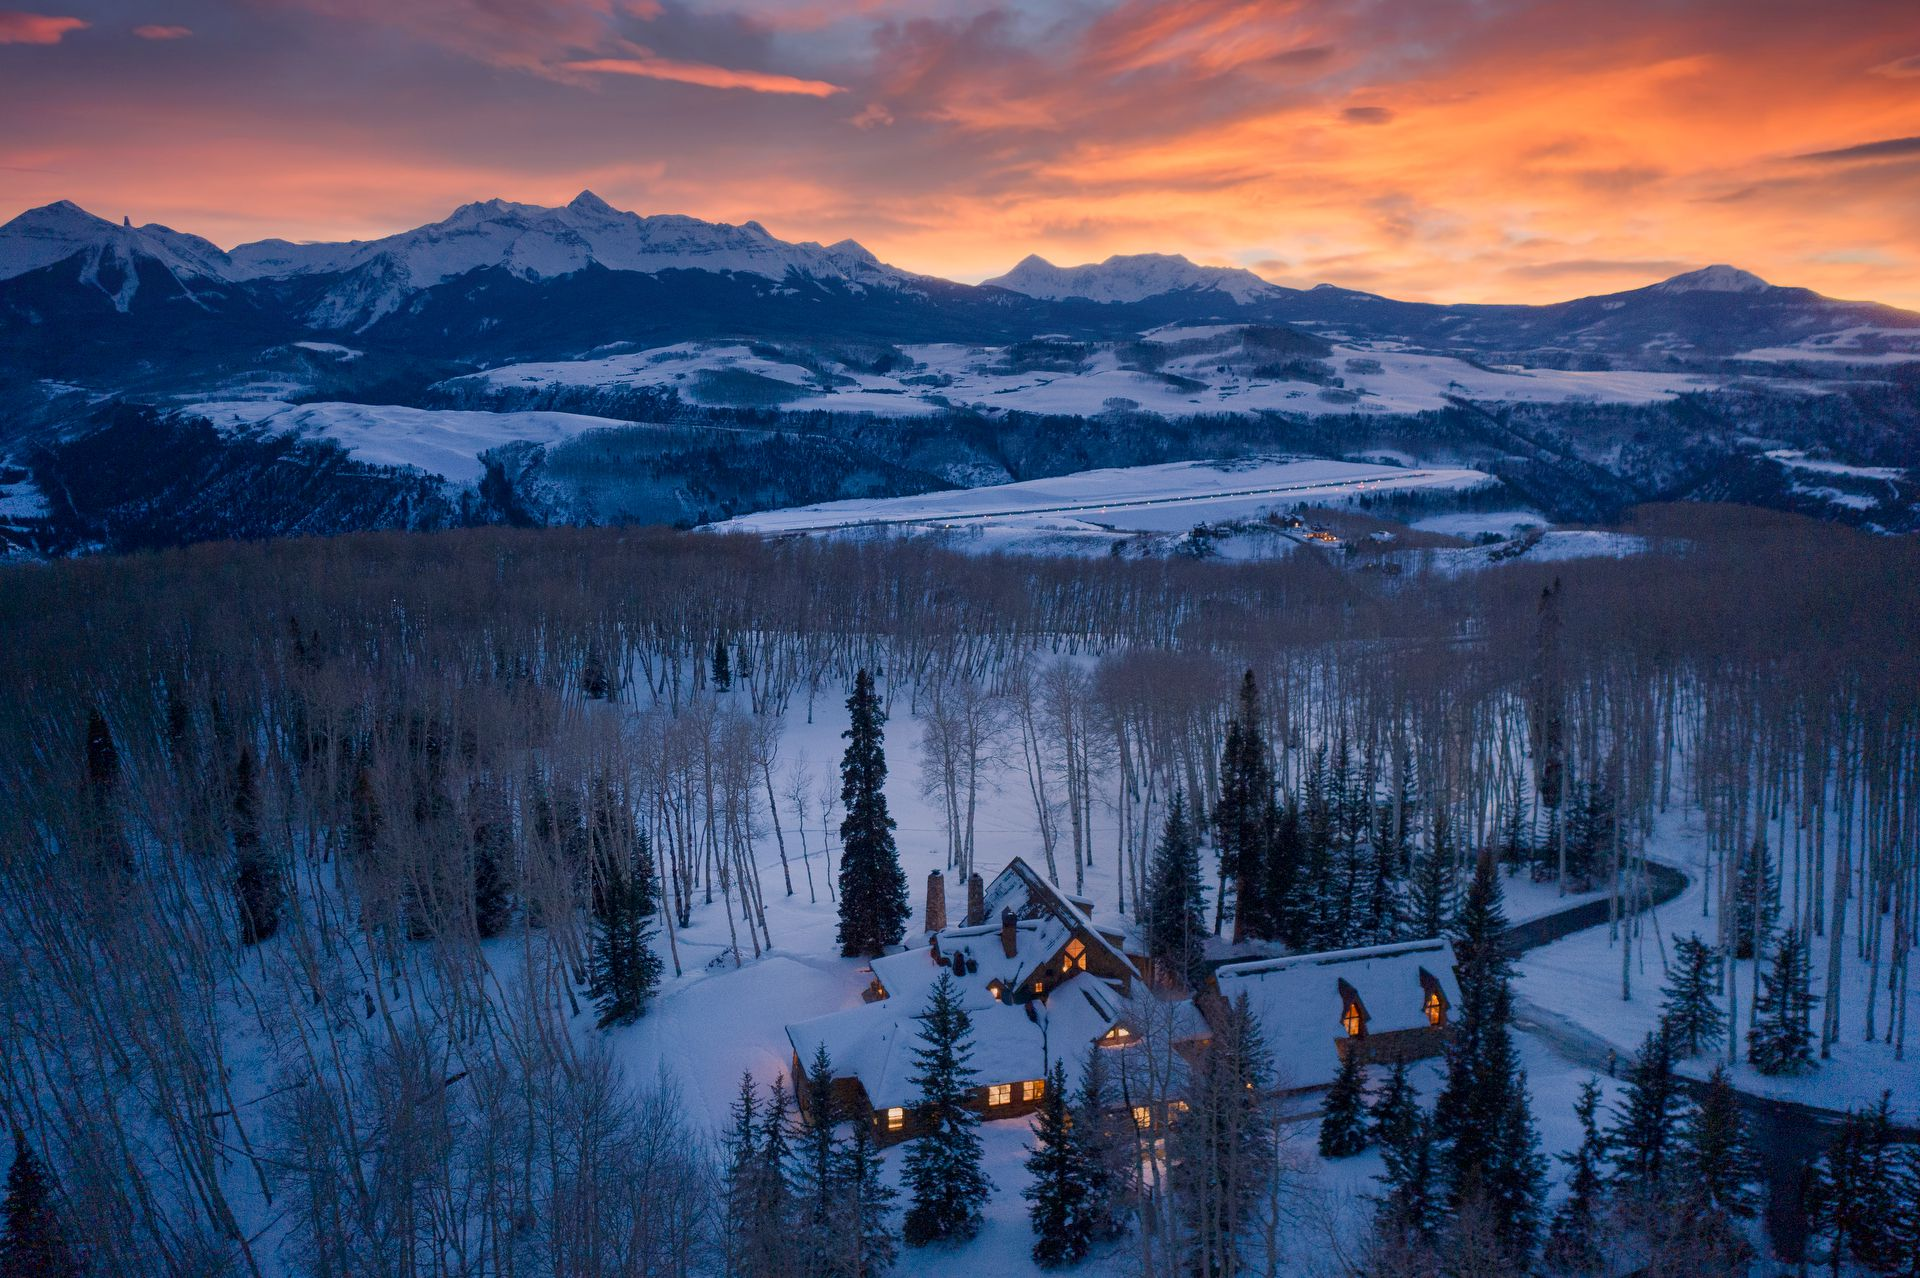 Tom Cruise's Telluride Ranch property at sunset